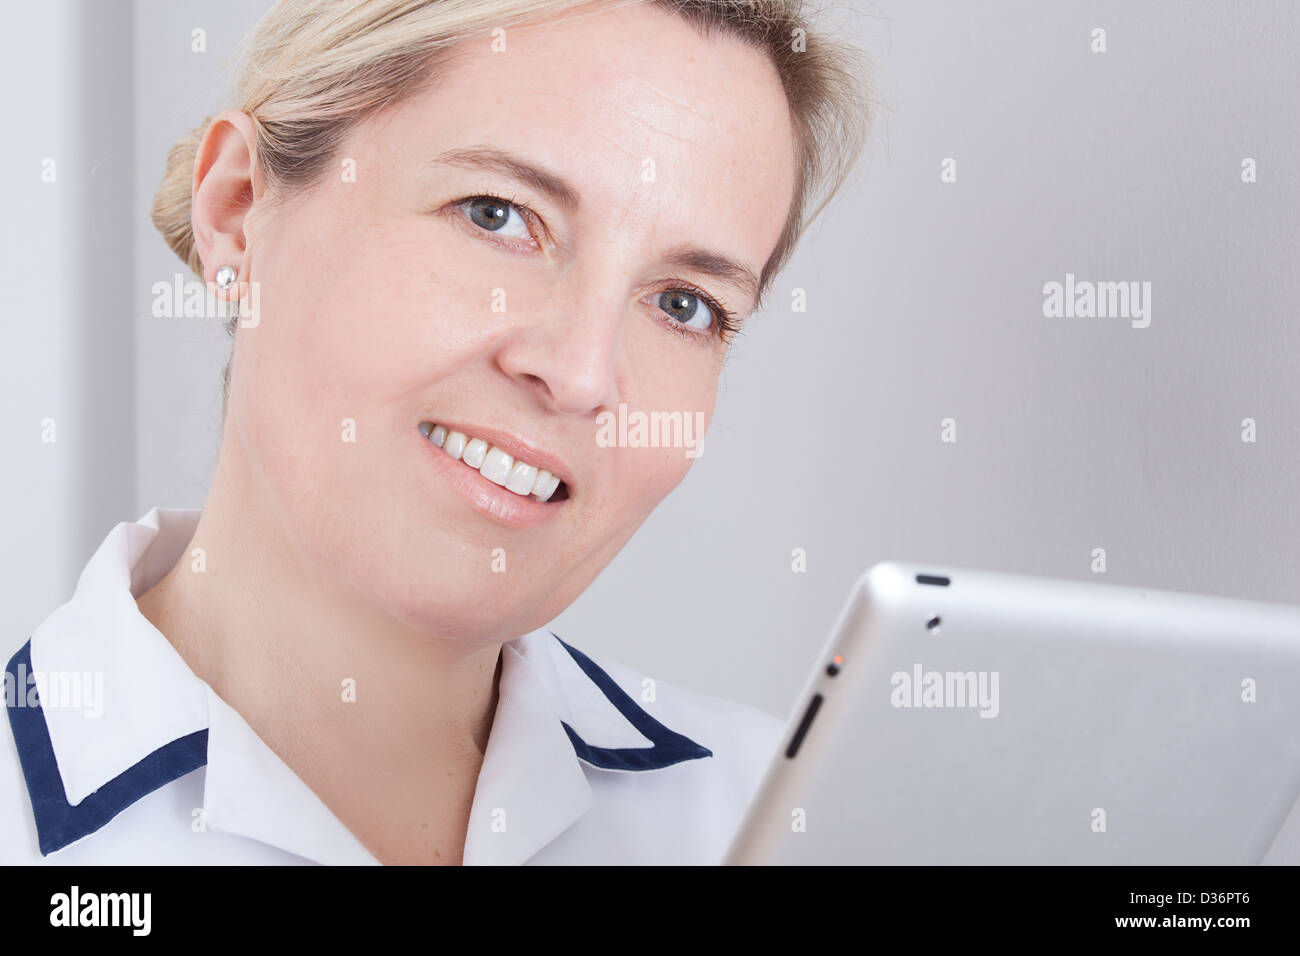 Female medical worker looking at camera holding a digital tablet. - Stock Image